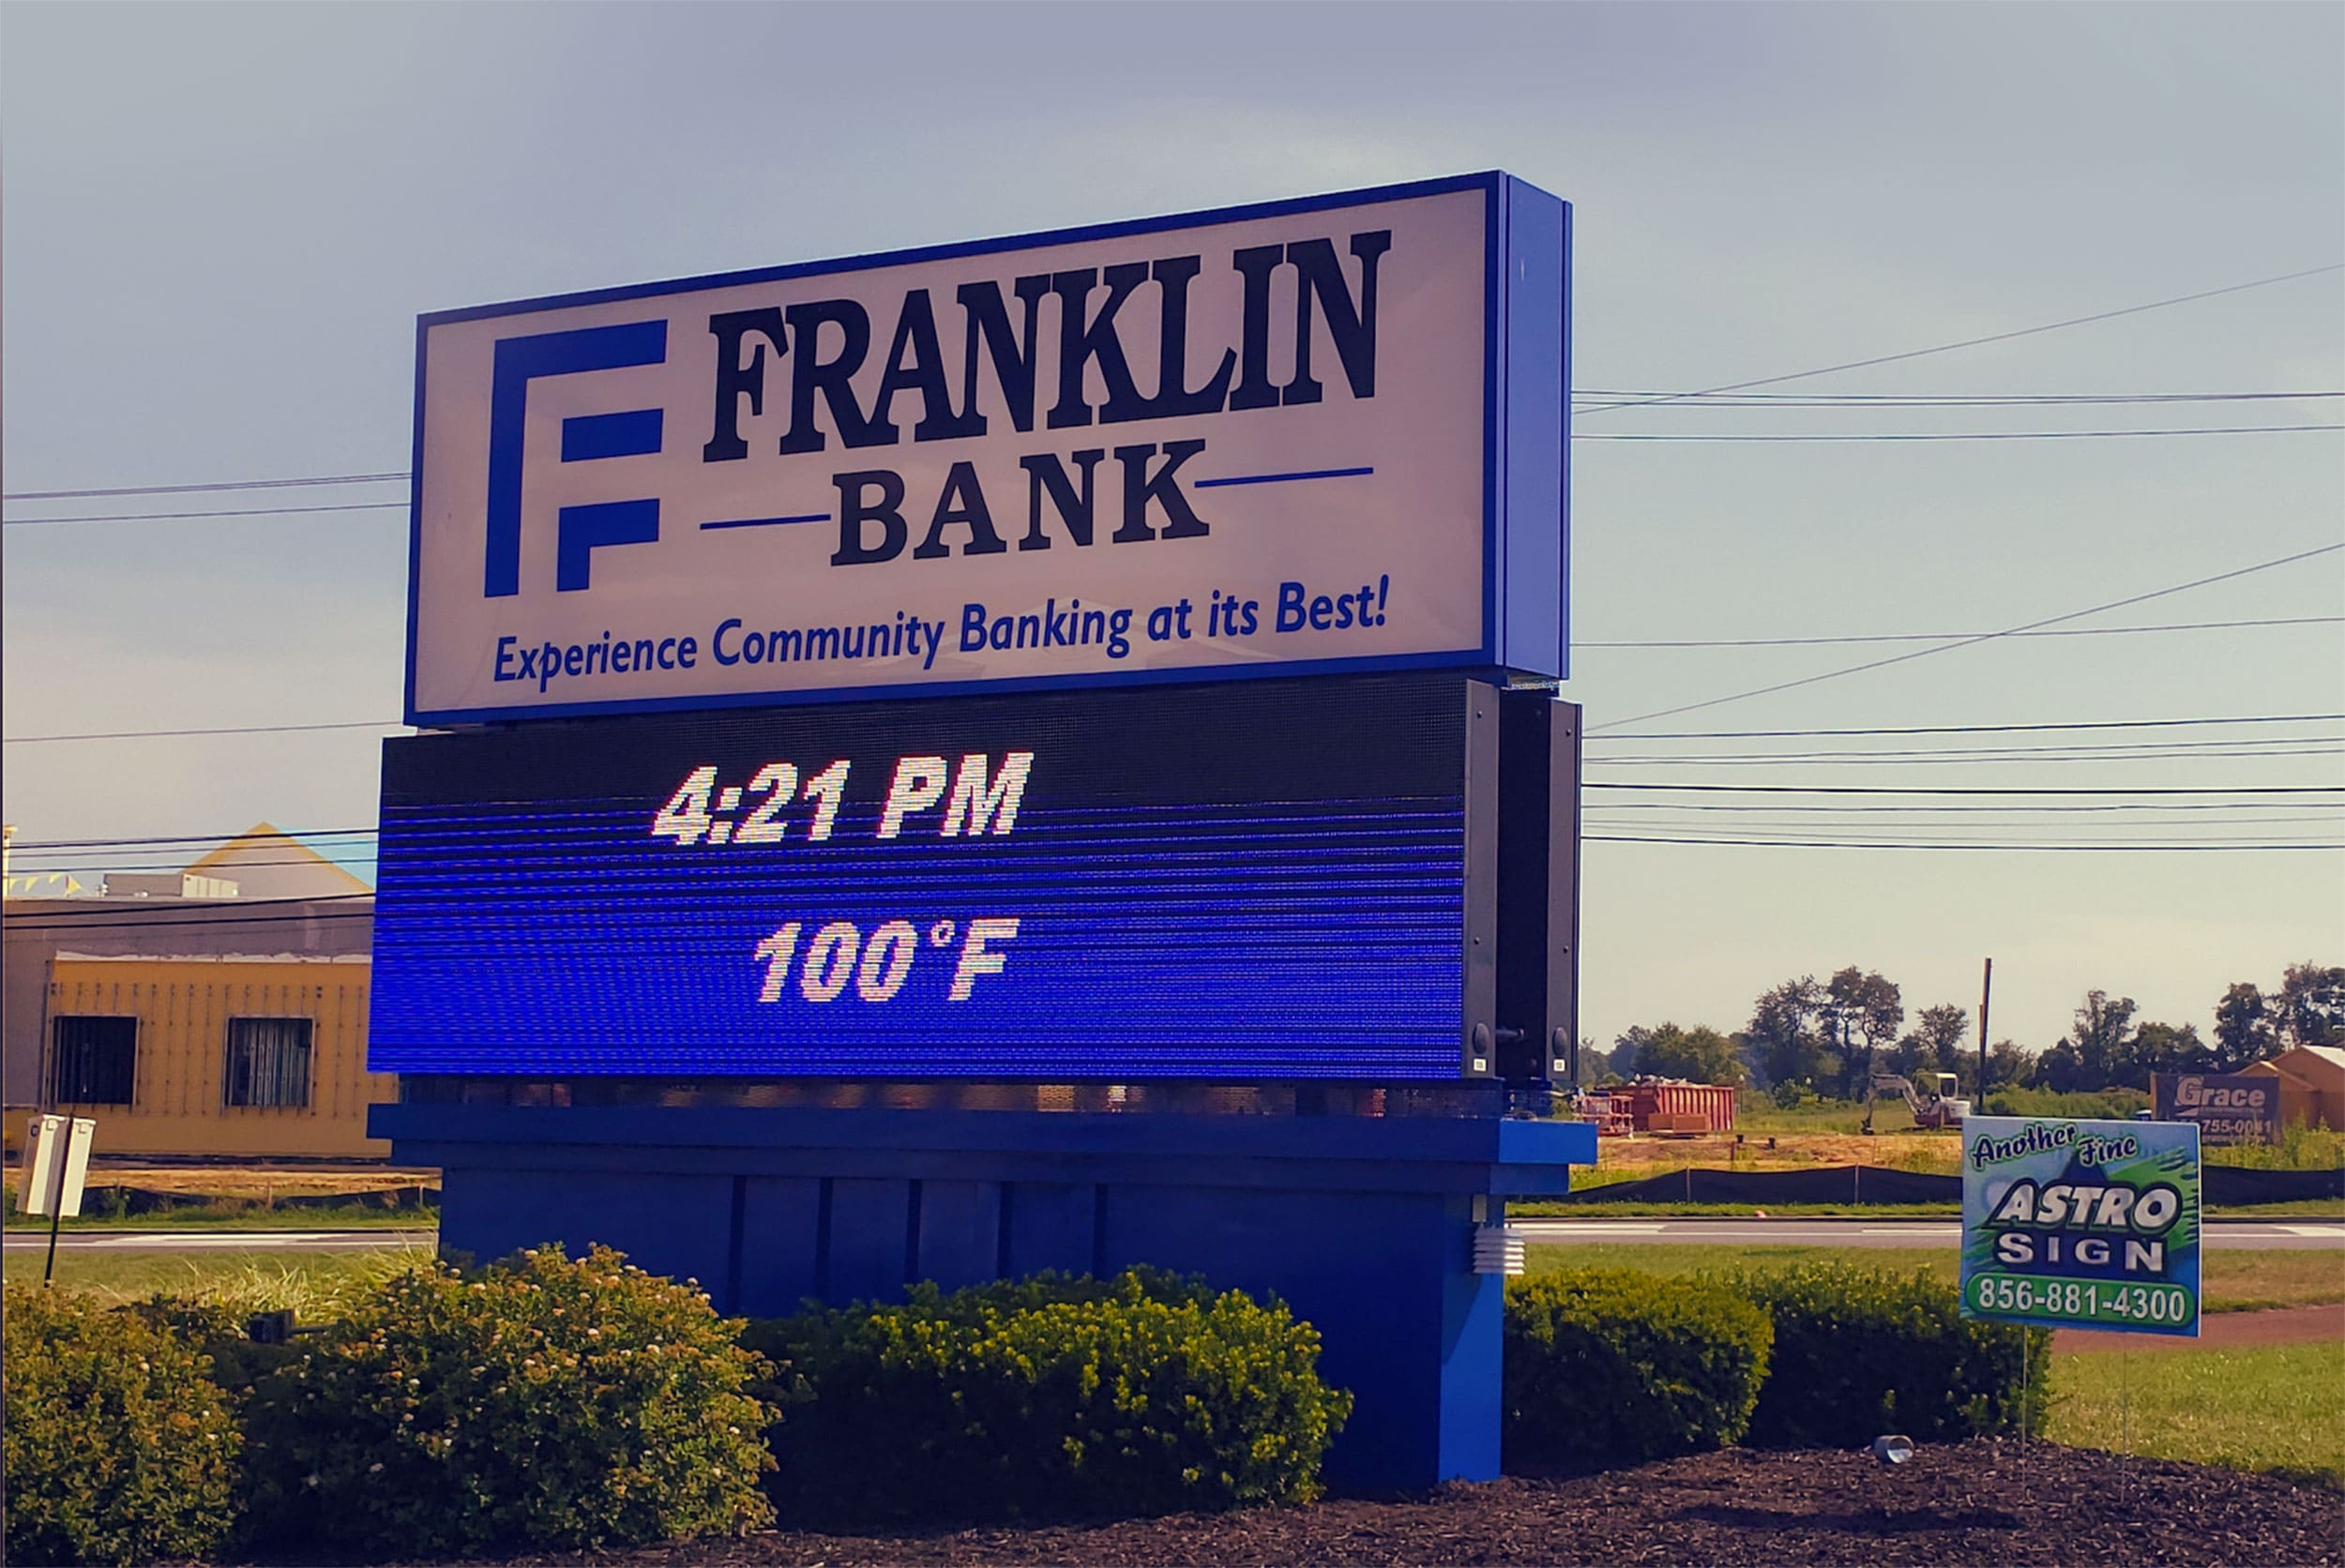 Astro Sign Co. (Glassboro, NJ) worked with a Franklin Bank branch to install an EMC from Optec Displays that could be seen from every angle.